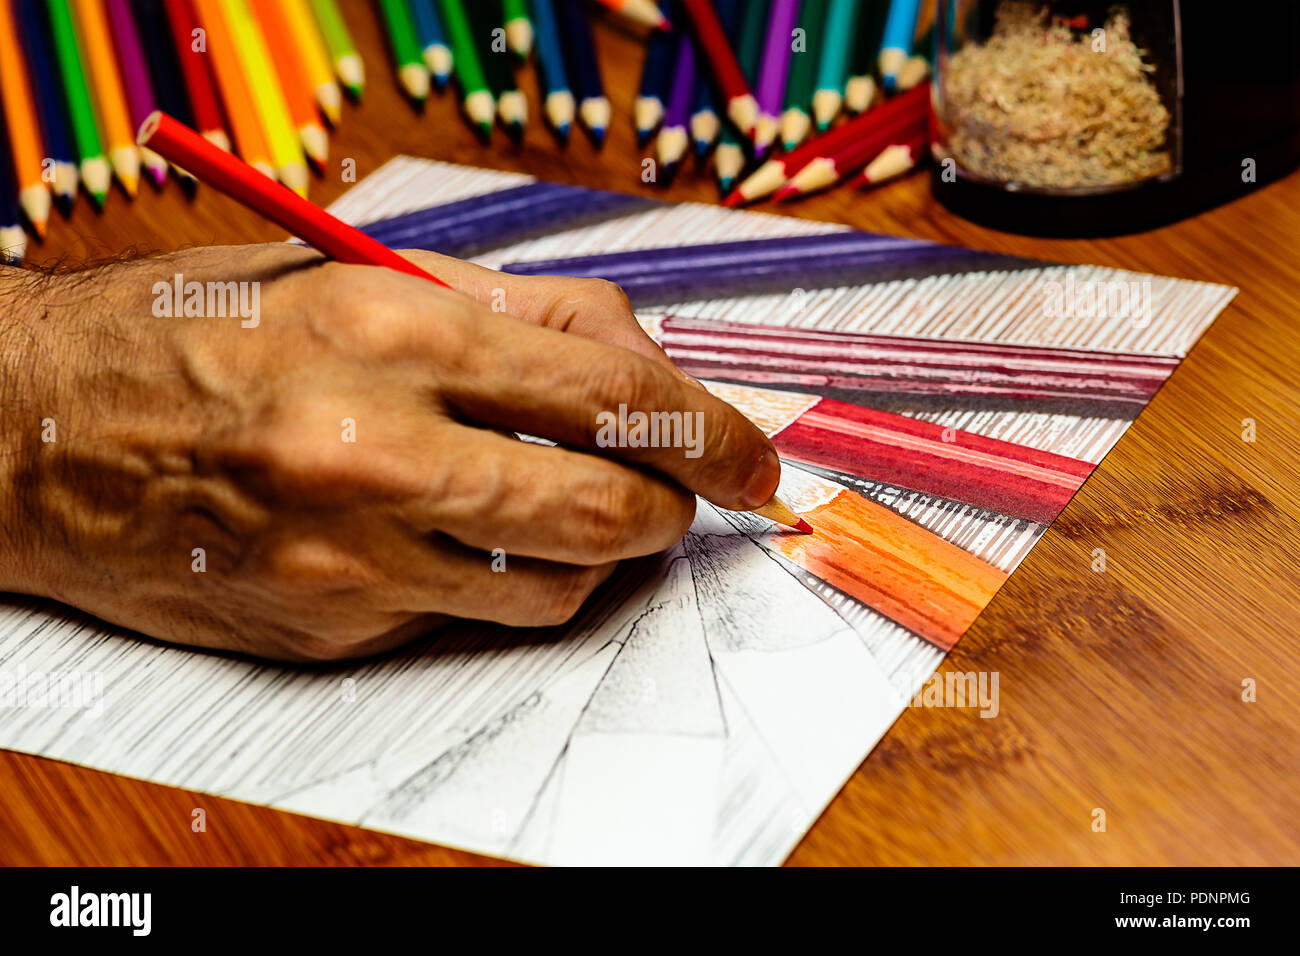 An Artists hand at work using colored pencils to draw colored pencils on white paper.  there is negative space for Copy. - Stock Image